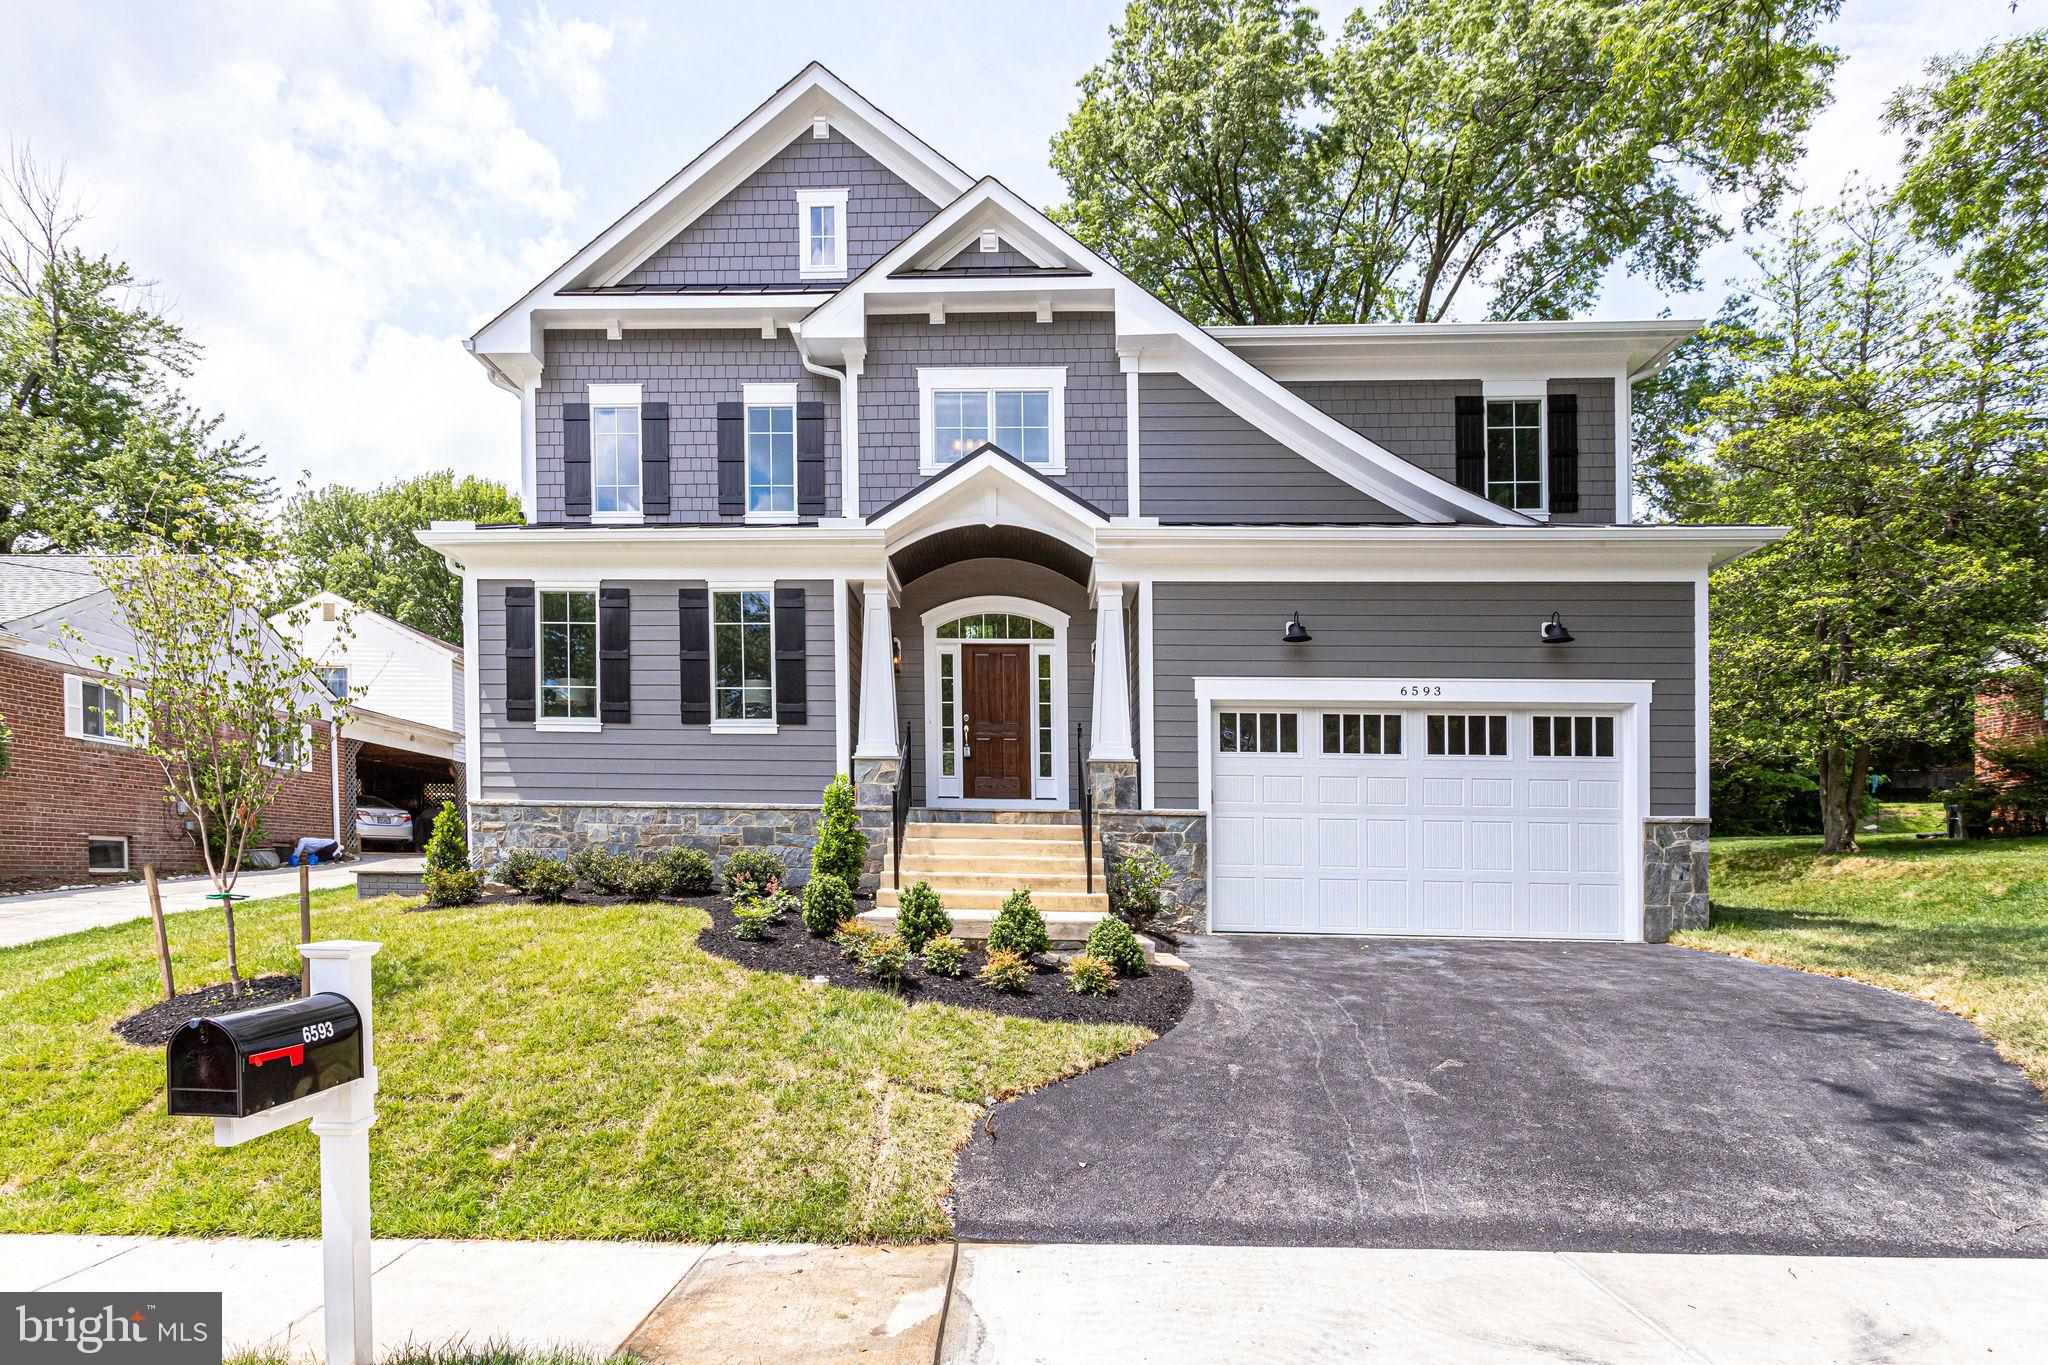 6593 Williamsburg Blvd, Arlington, VA, 22213